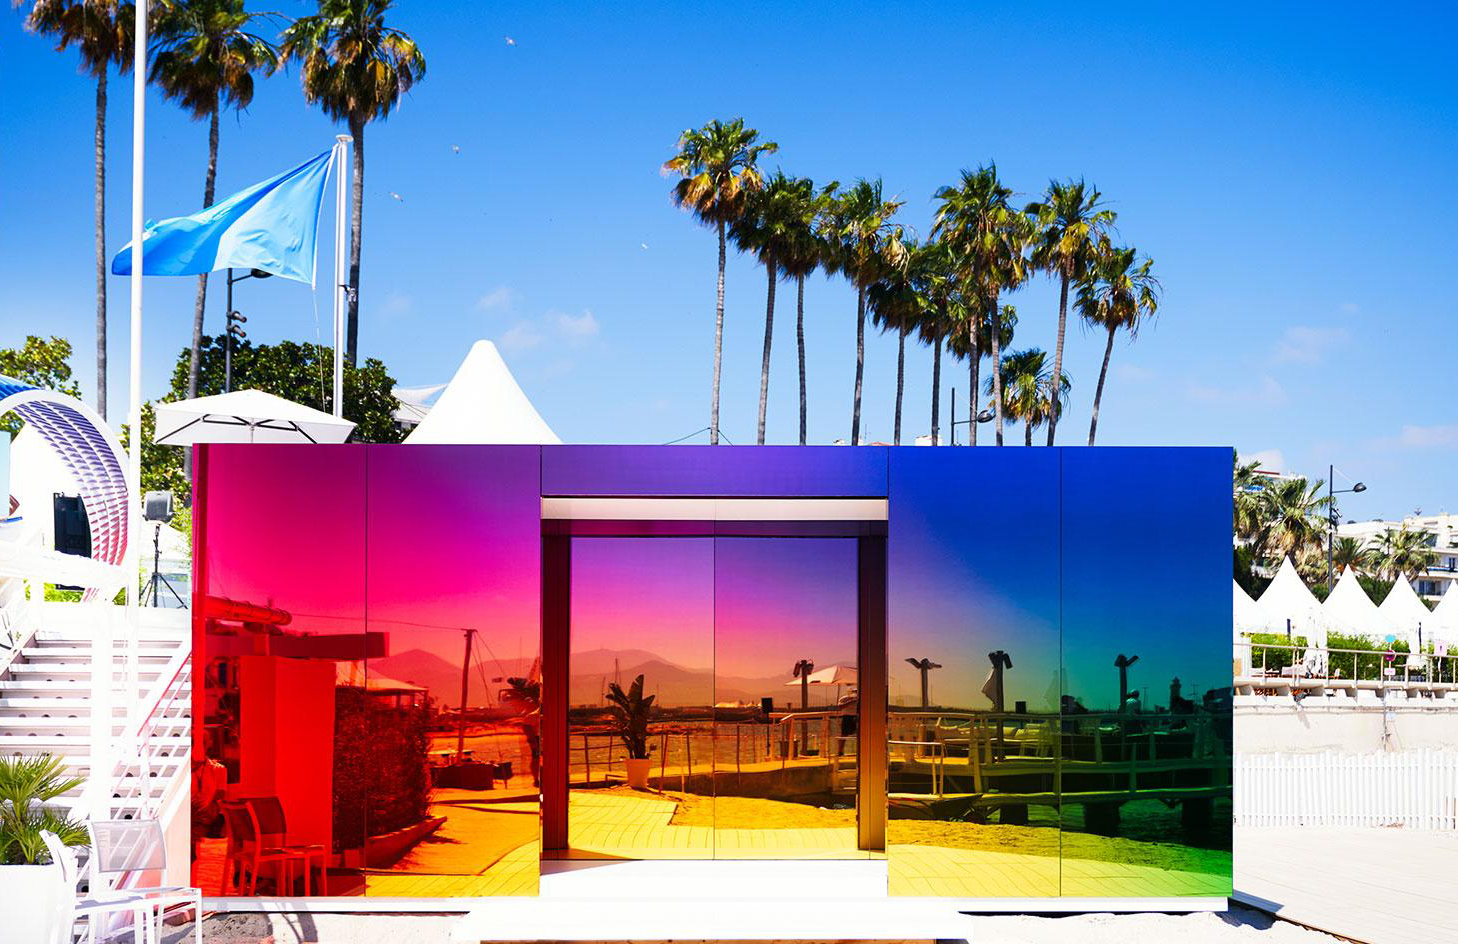 Germans Ermičs designed 'Where the Rainbow Ends' pavilion for Instagram in Cannes which features an ombre sheen